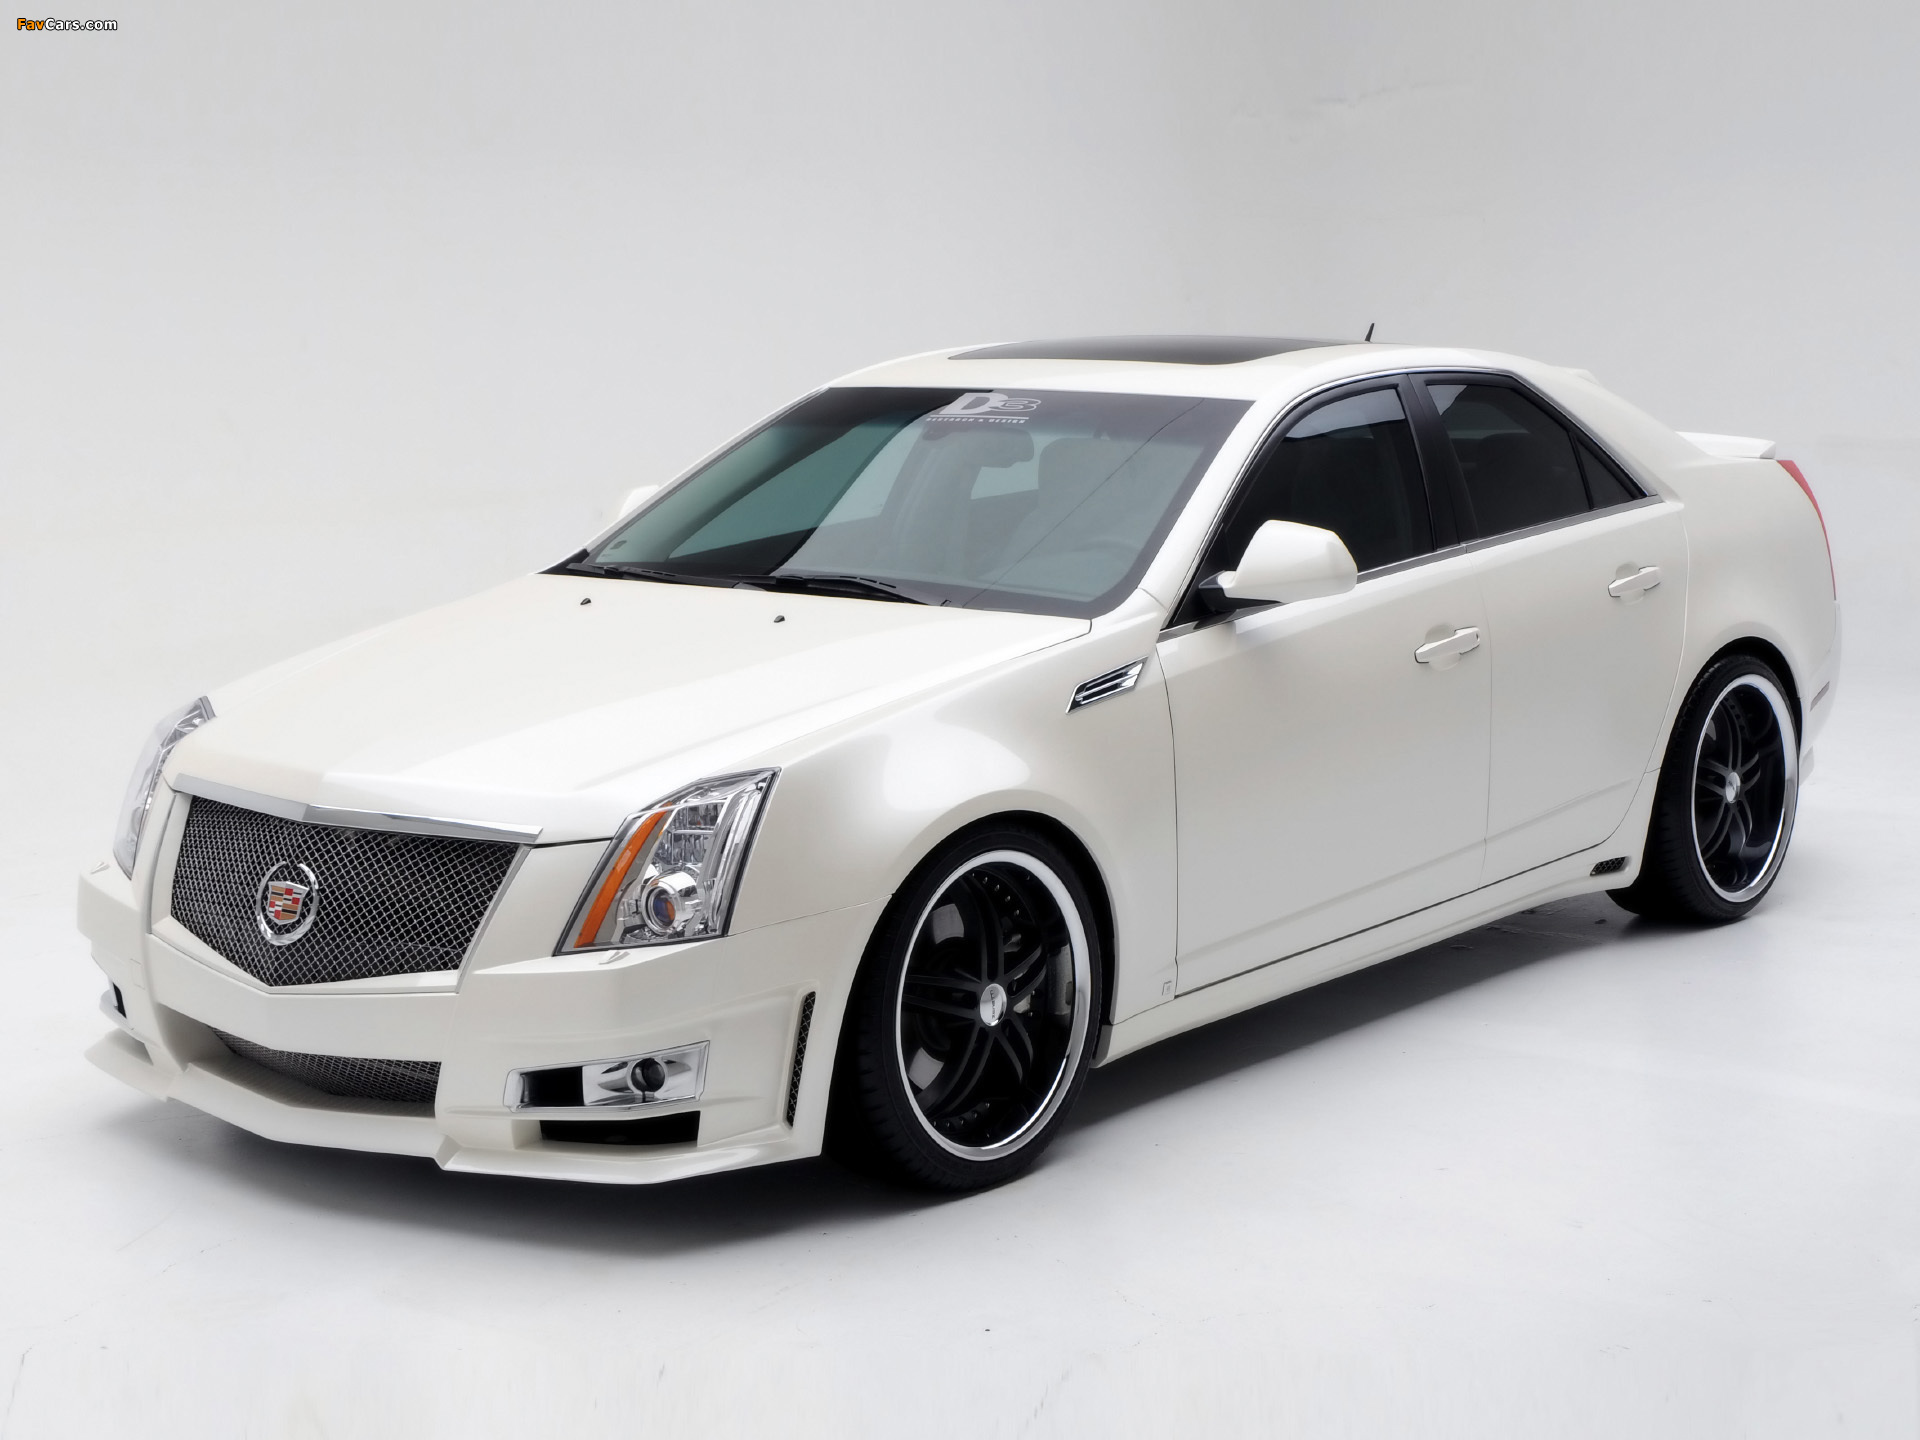 Cadillac CTS by D3 2007 wallpapers (1920 x 1440)